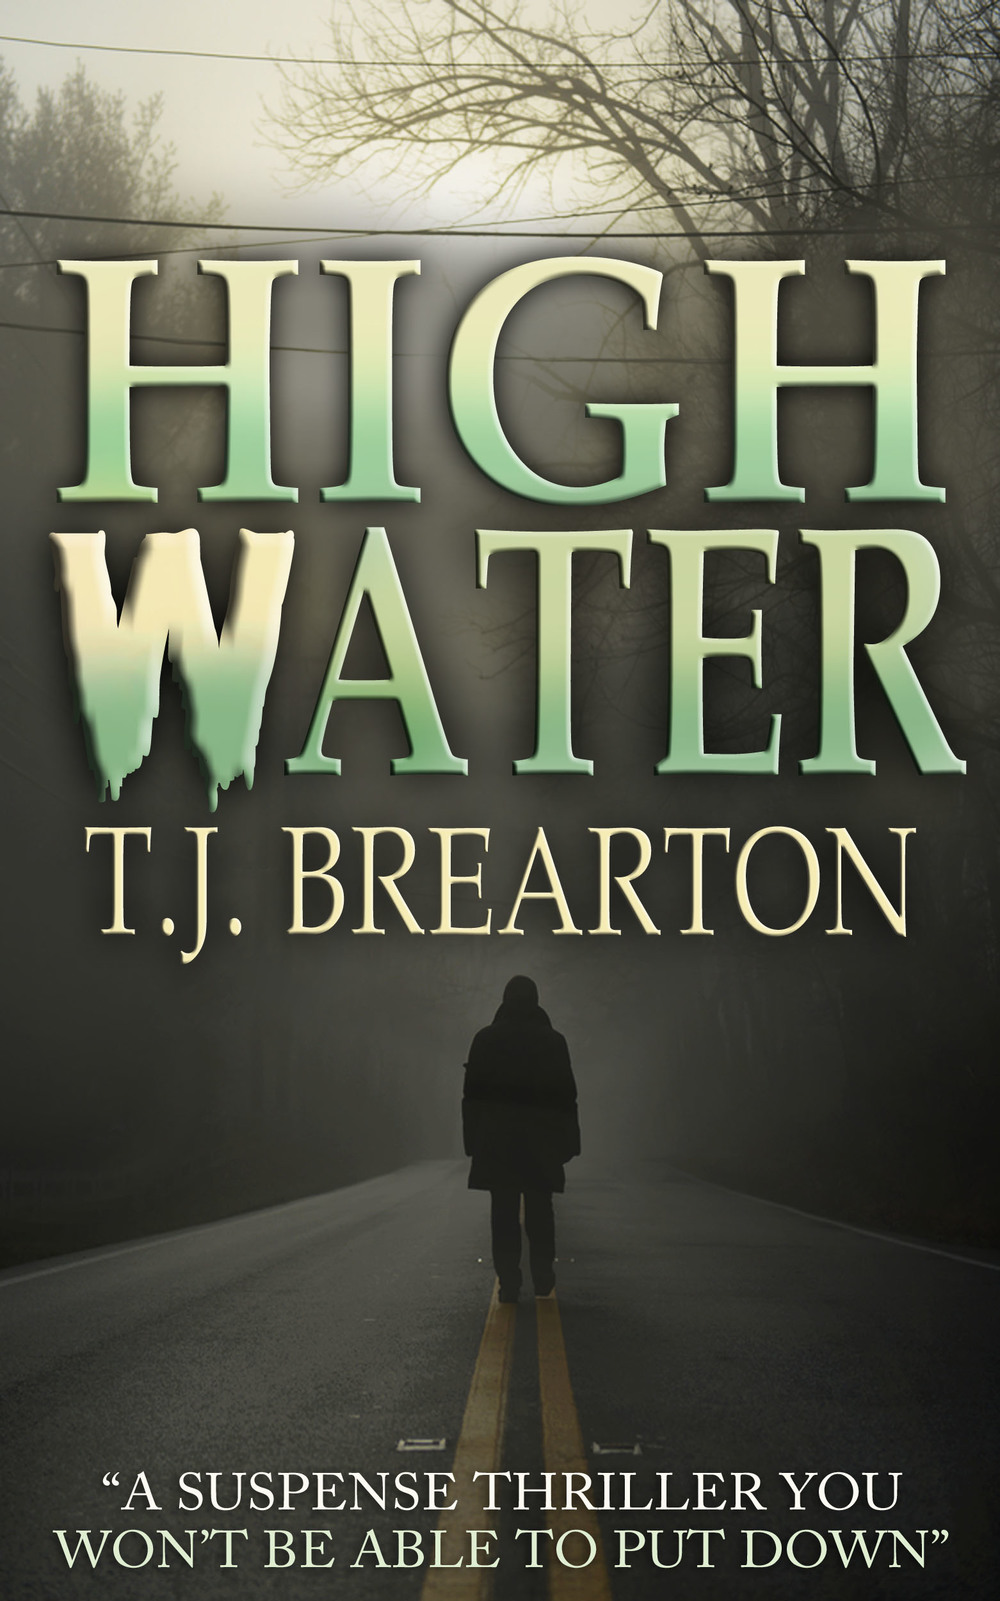 highwater cover6 NEW.jpg